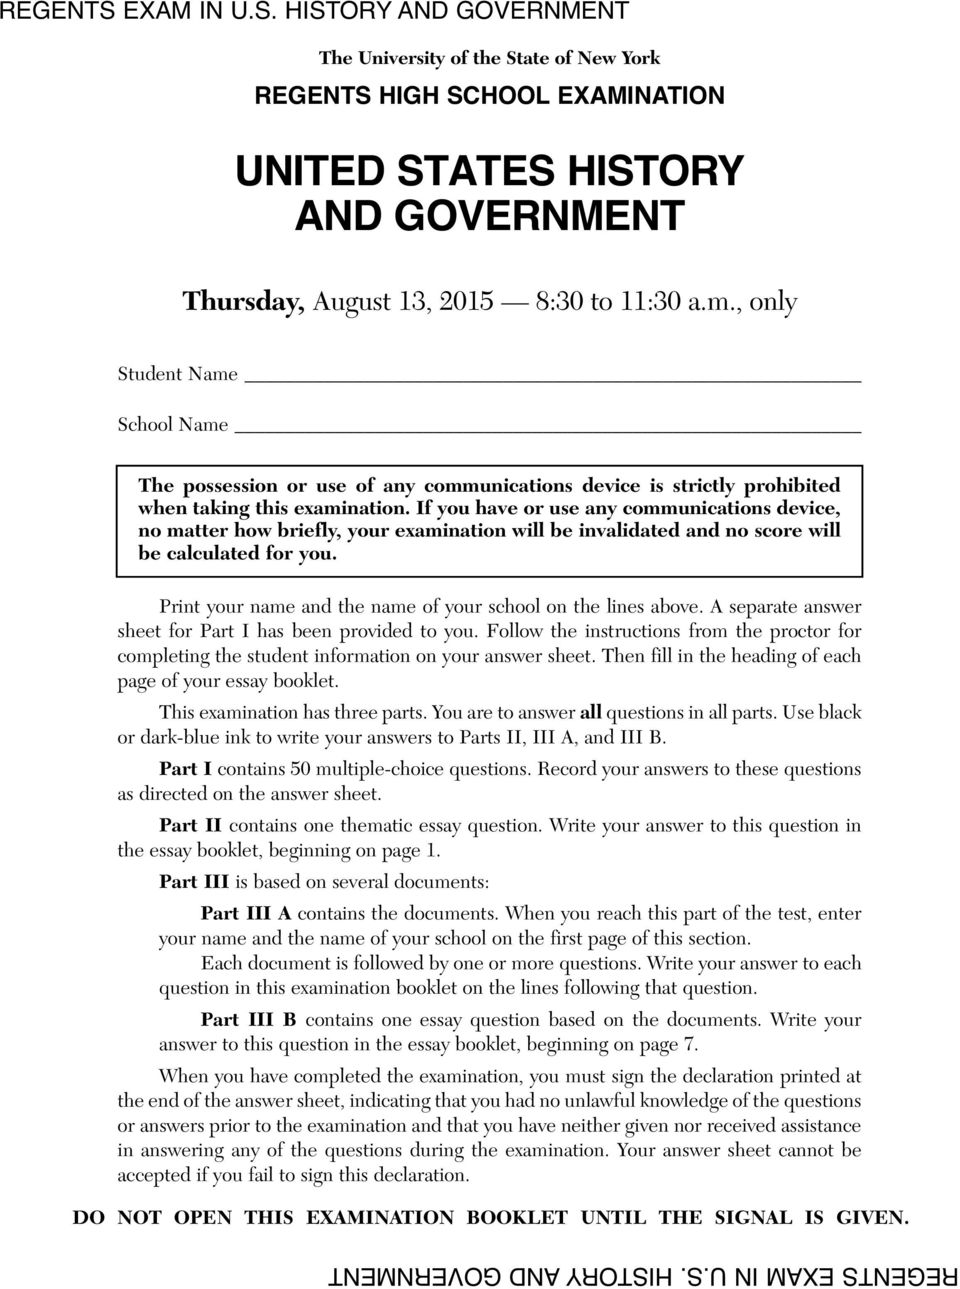 united states history and government pdf if you have or use any communications device no matter how briefly your examination